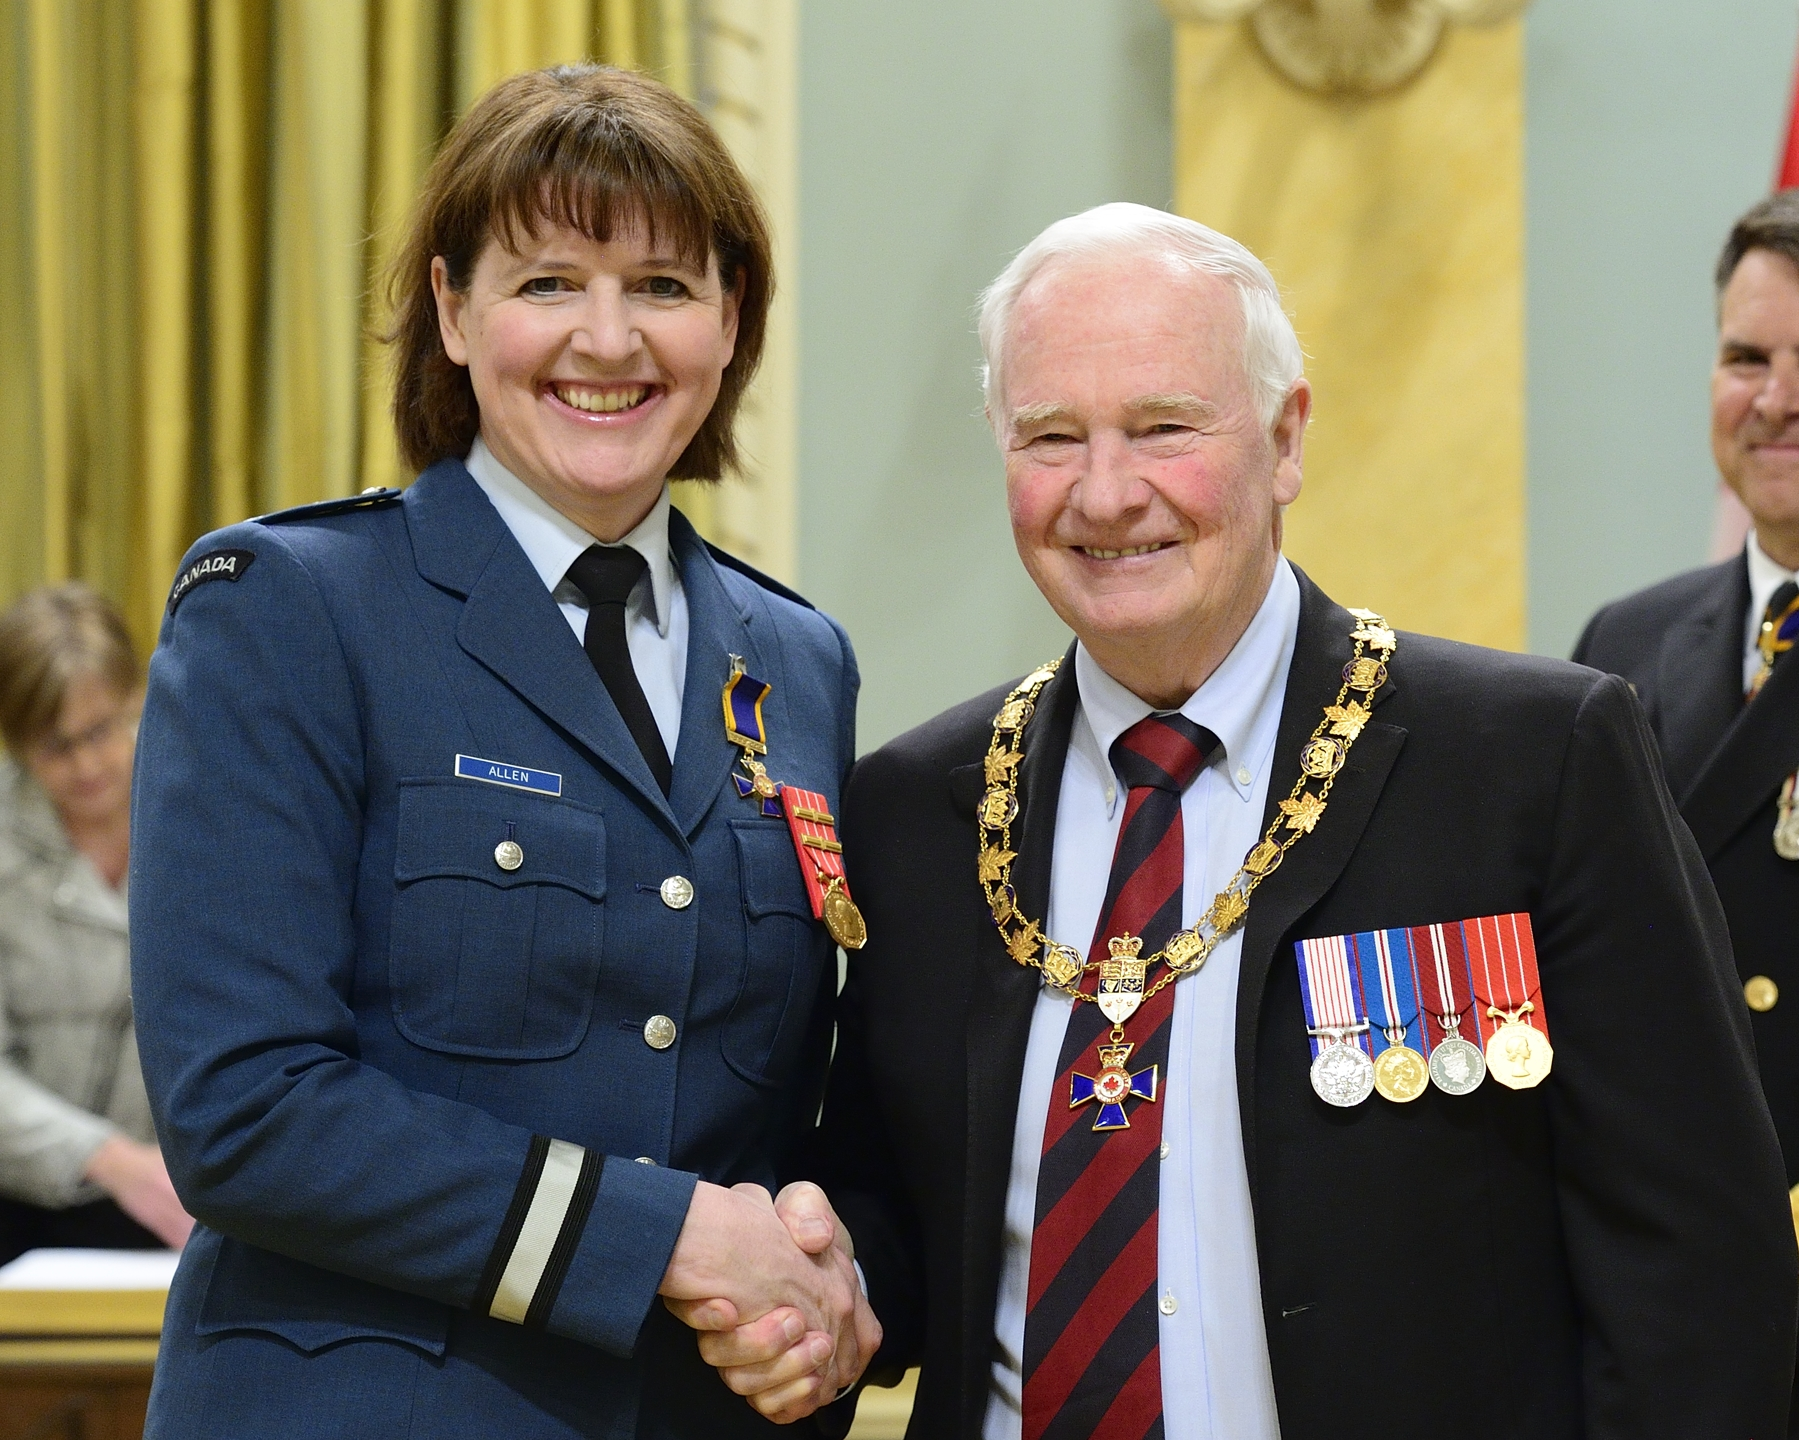 Governor General and Commander-in-Chief of Canada David Johnston presents the Order of Military Merit to Brigadier-General Frances Jennifer Allen, OMM, CD, from the Office of the Chief of Force Development, Ottawa, Ontario. PHOTO: Sergeant Johanie Mahieu, Rideau Hall ©, GG05-2017-0075-013-allen